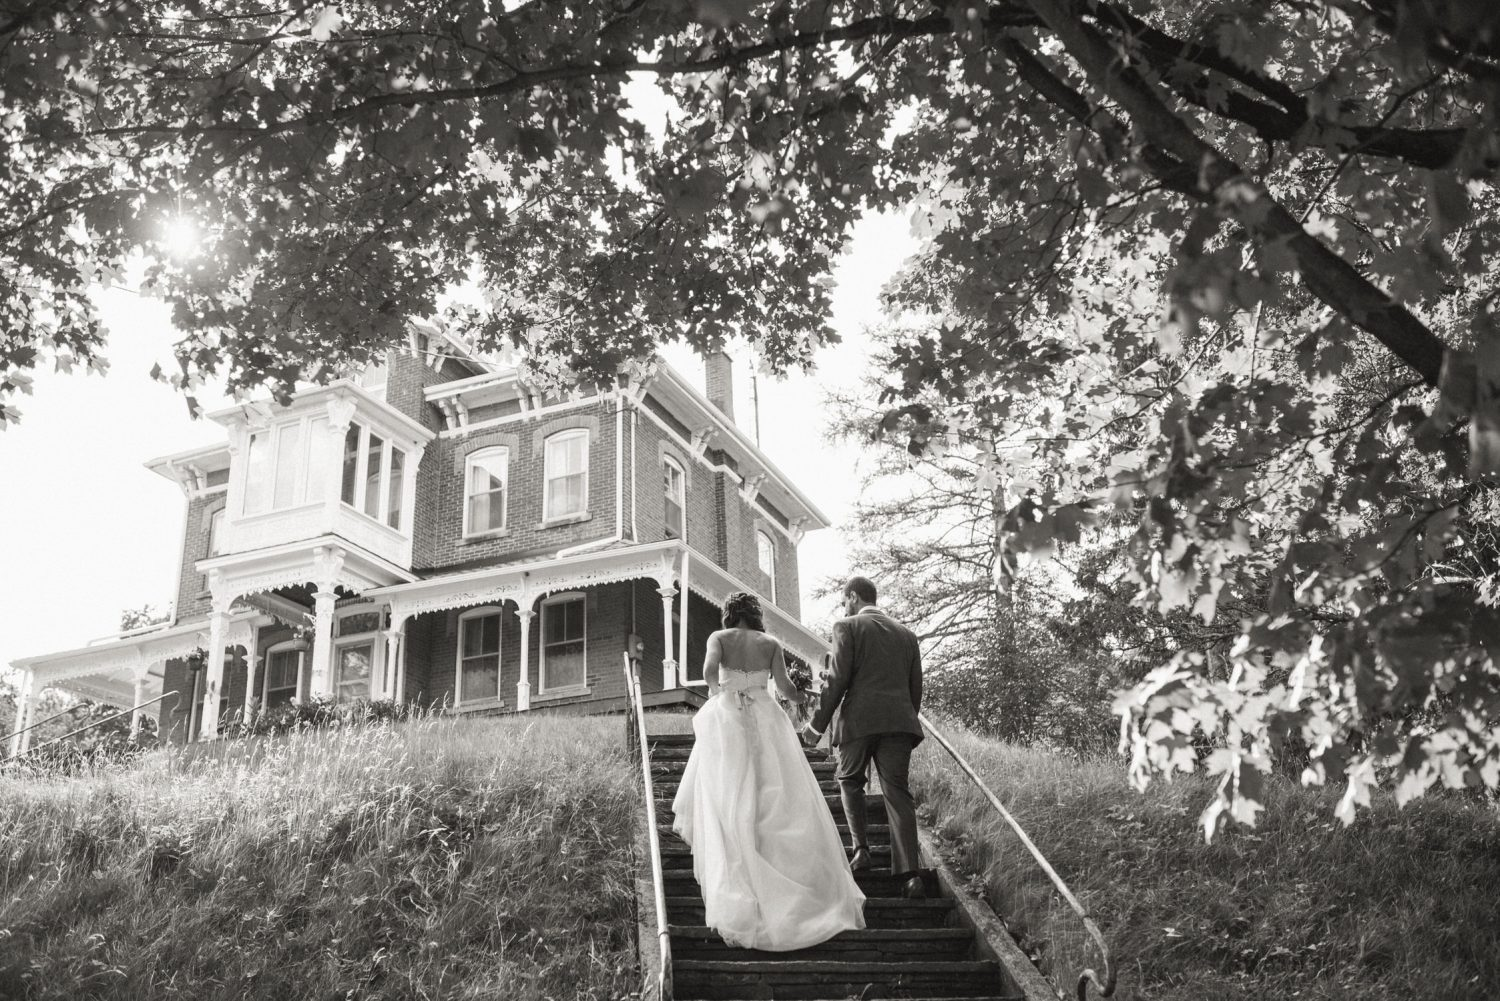 Bride and groom walking up steps towards house